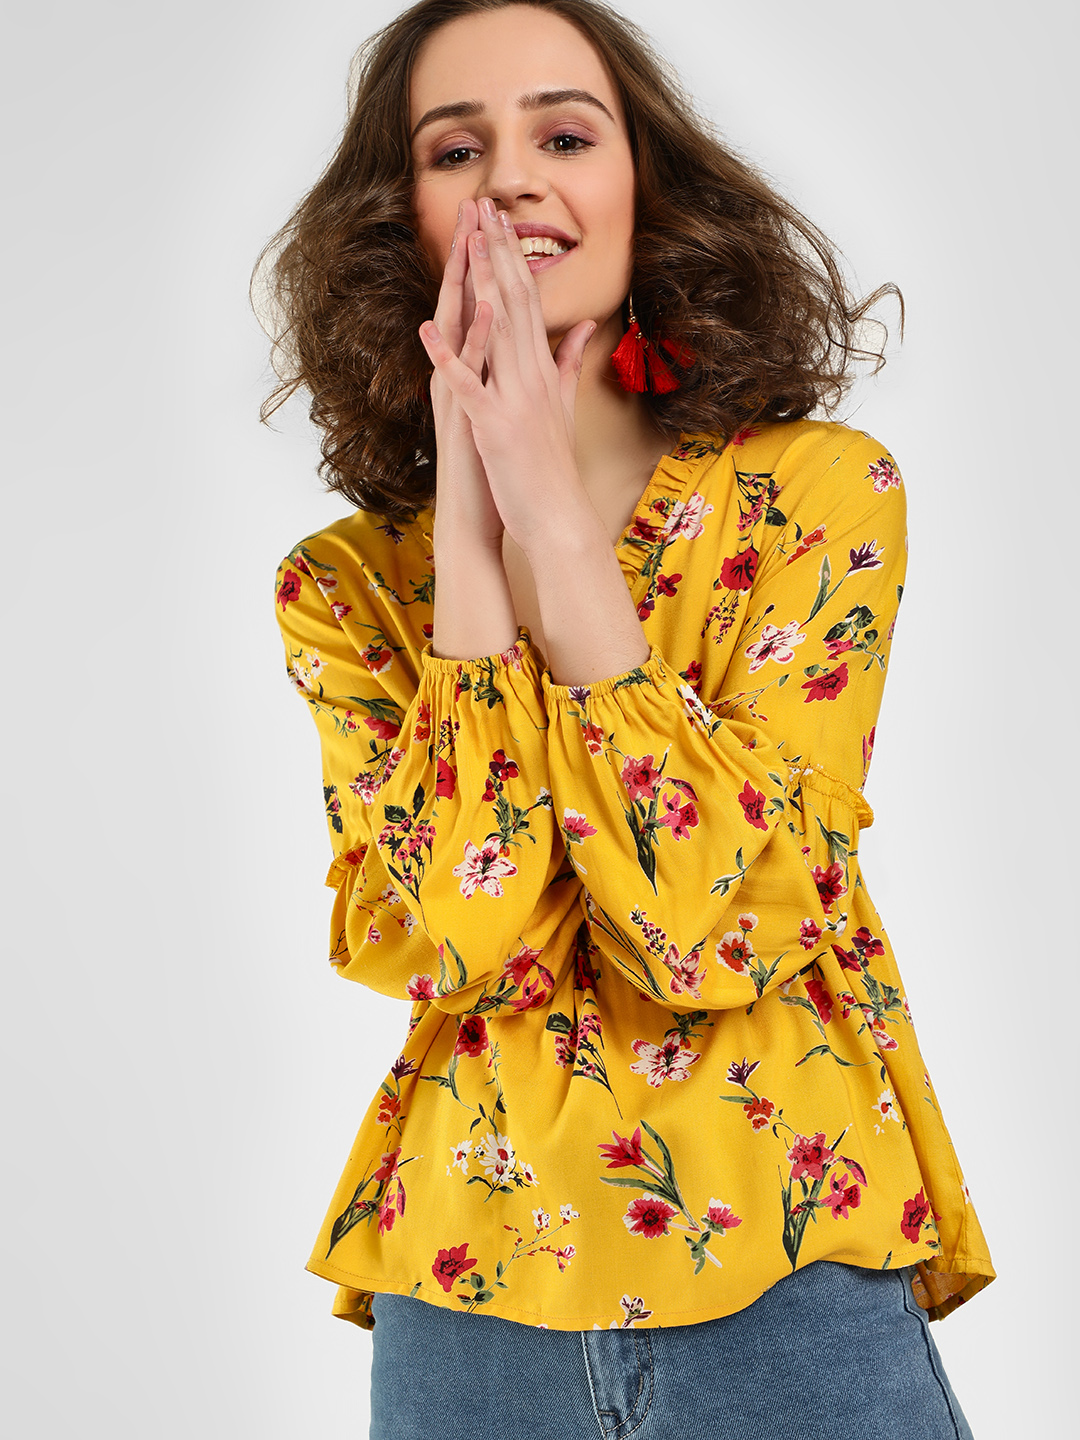 Rena Love Yellow Floral Print Frill Wrap Blouse 1